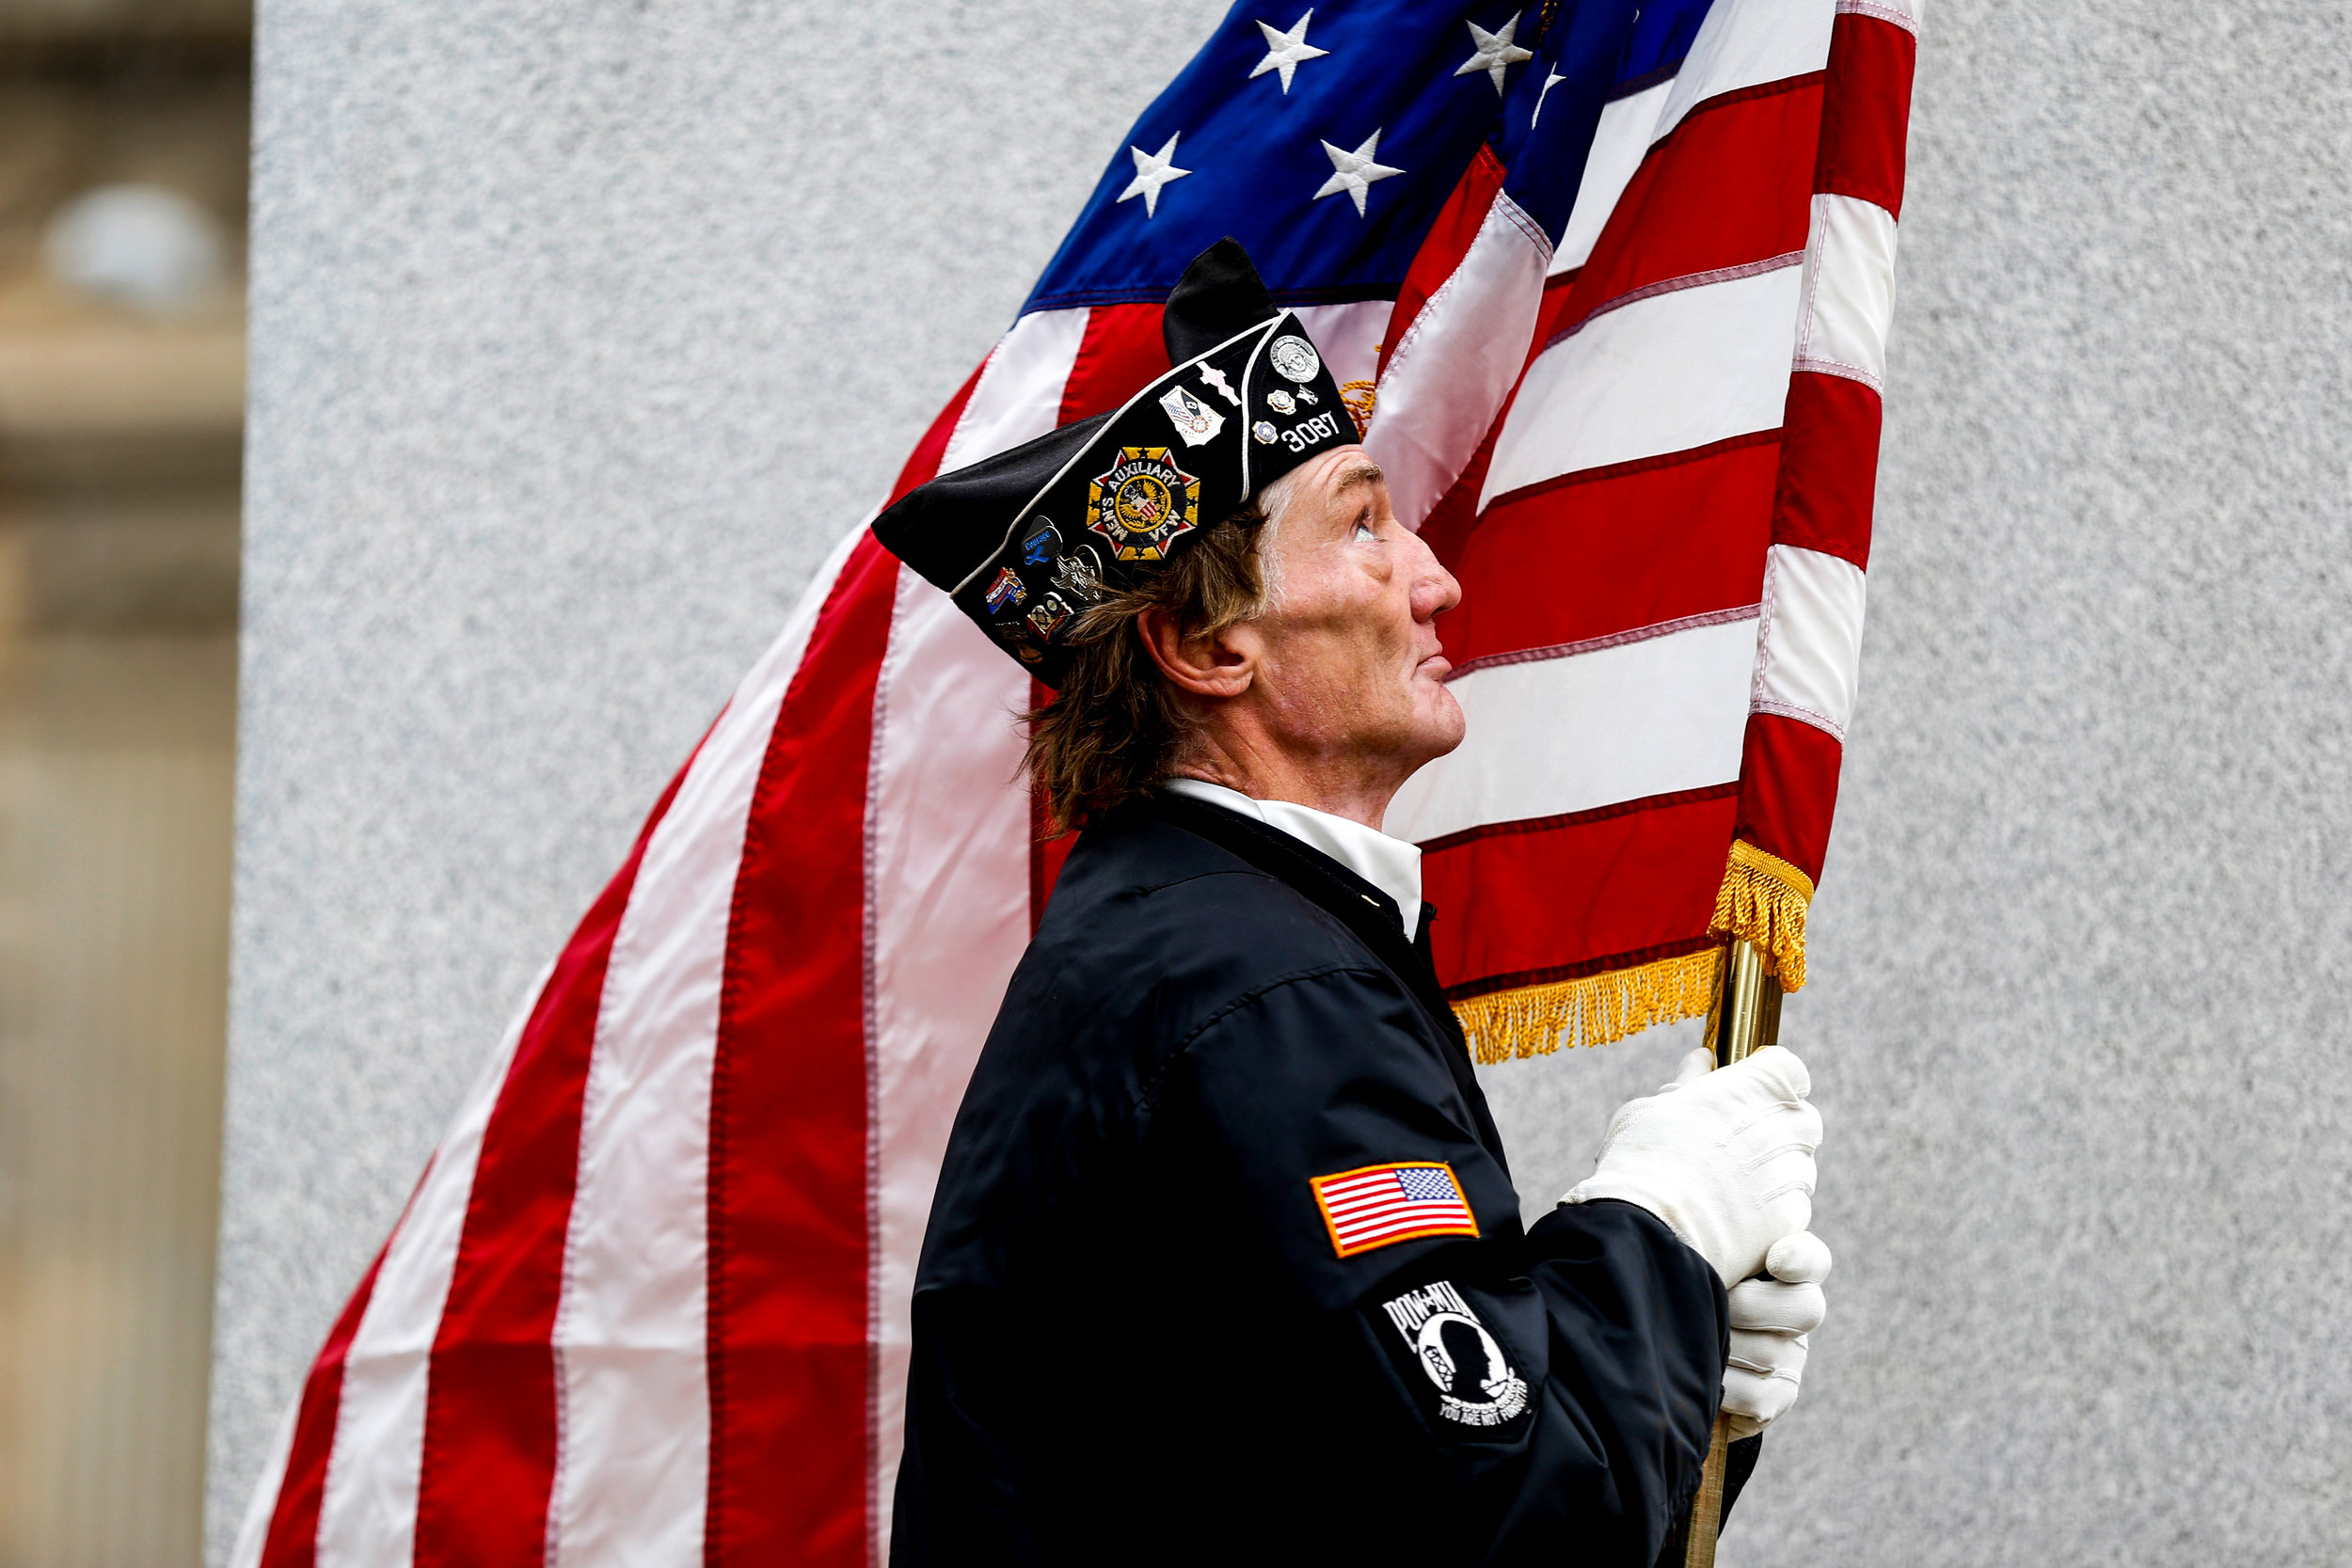 George Harris, with Post 3087, of Flint, holds the flag during a Veterans Day Salute honoring veterans and their service on Friday, Nov. 11, 2016 at McFarlan Veterans Memorial Park in downtown Flint.